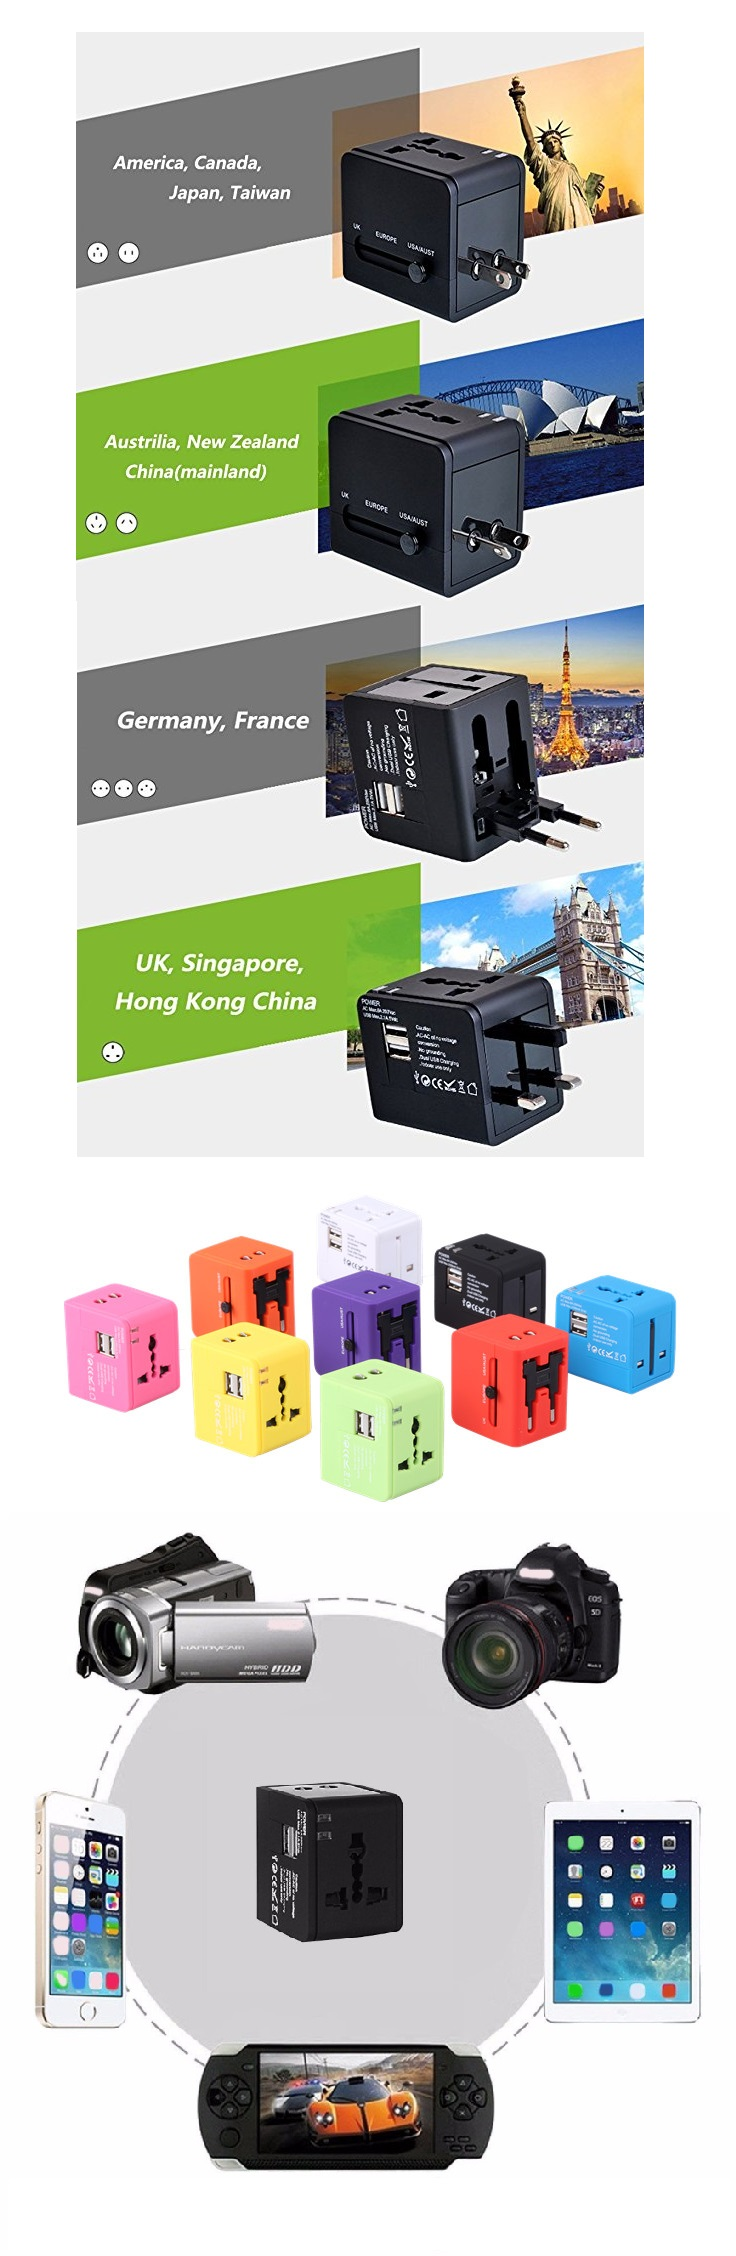 All in one world travel ac dc 5v 2a power adapter charger for USA Australia Europe UK smart multi electric plug